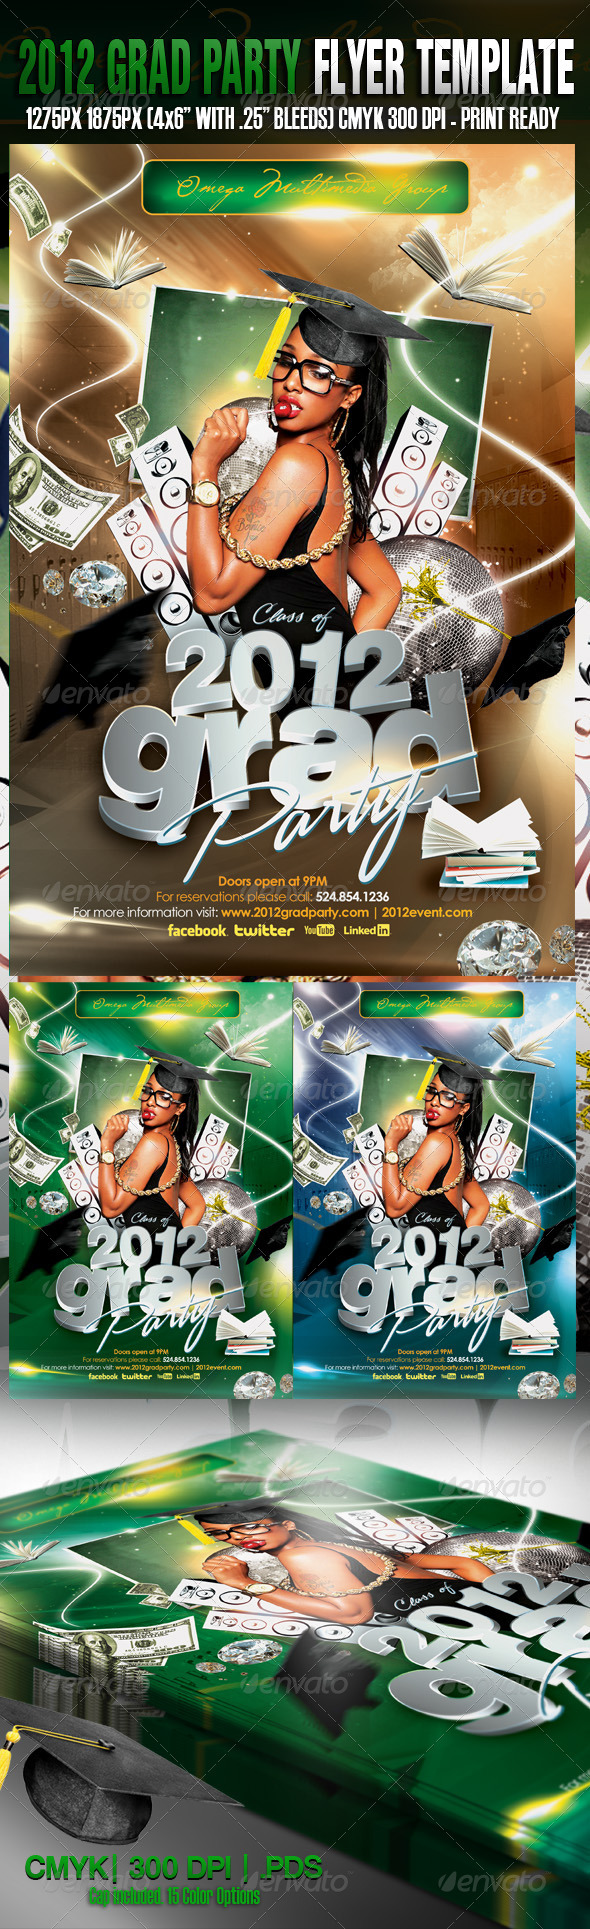 2012 Grad Party Template - Events Flyers